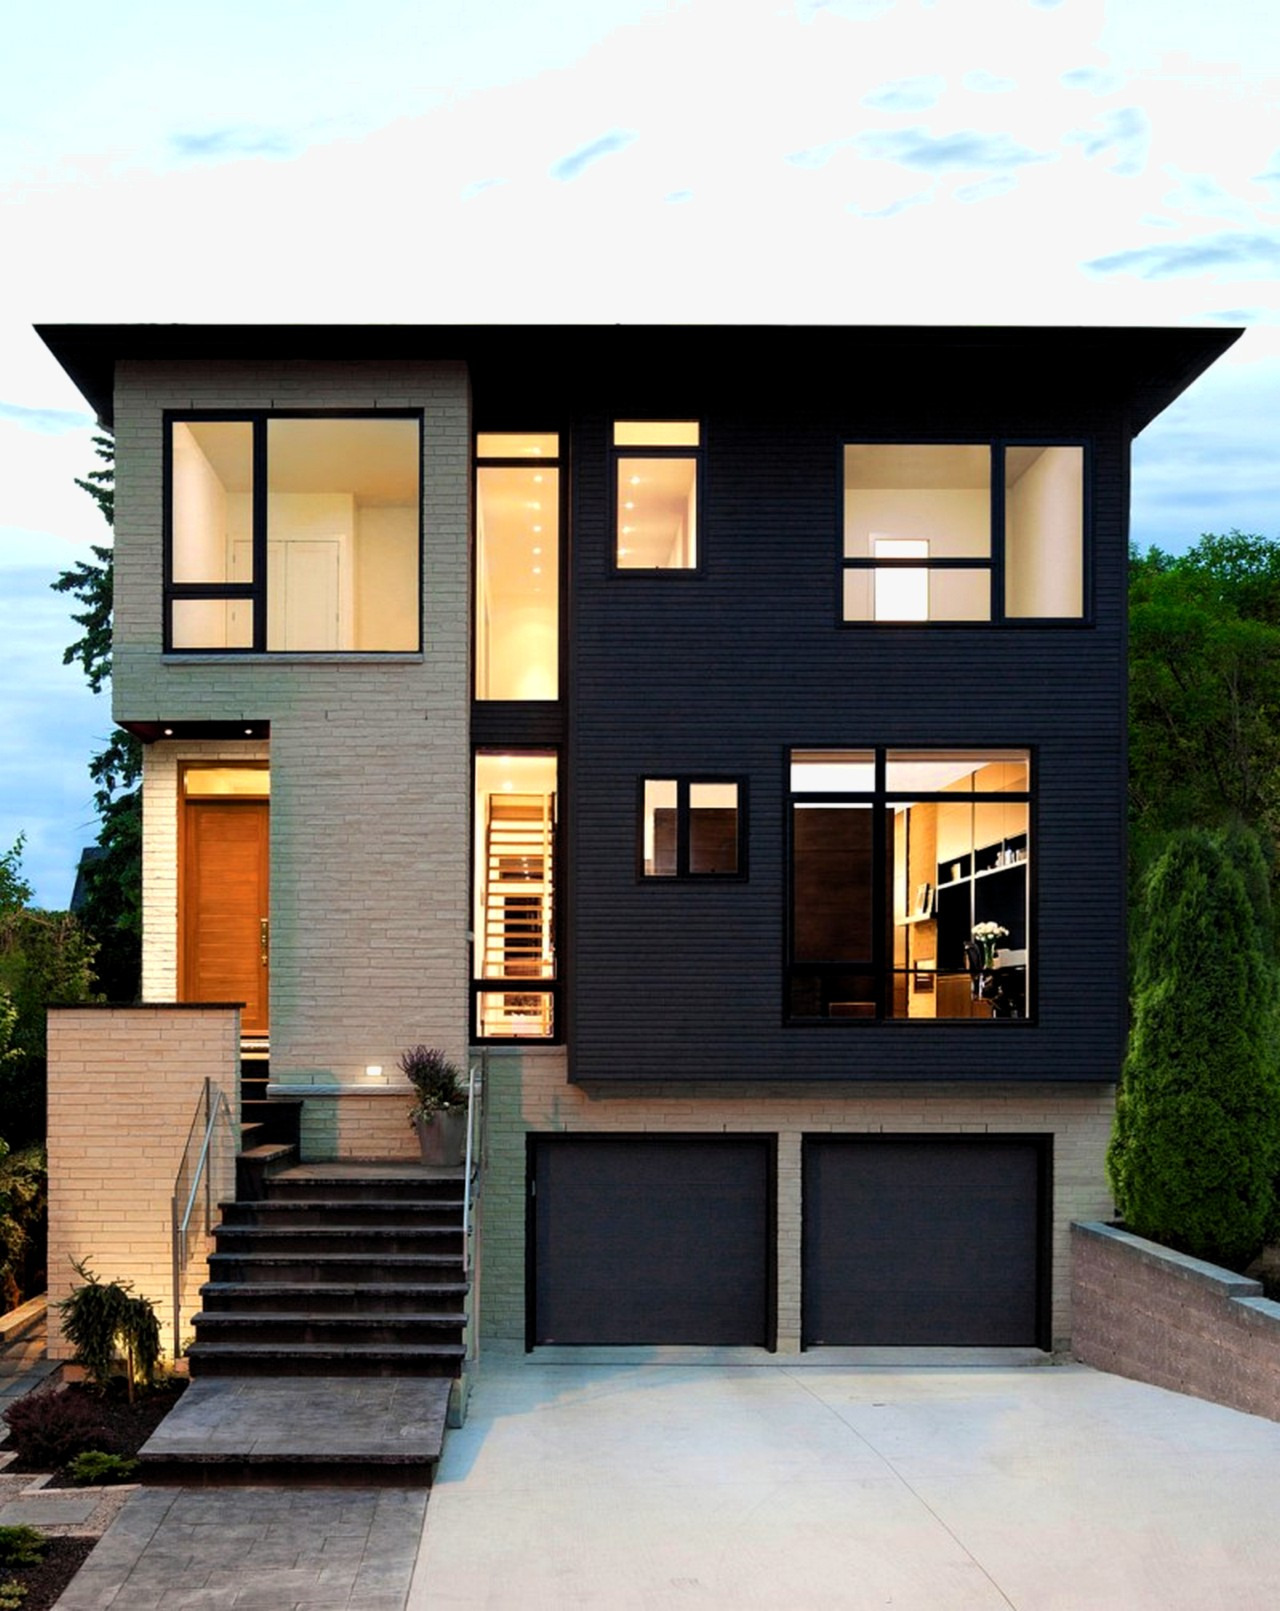 minimalist home design hovgallery plus minimalist house ideas black architectures photo minimalist home